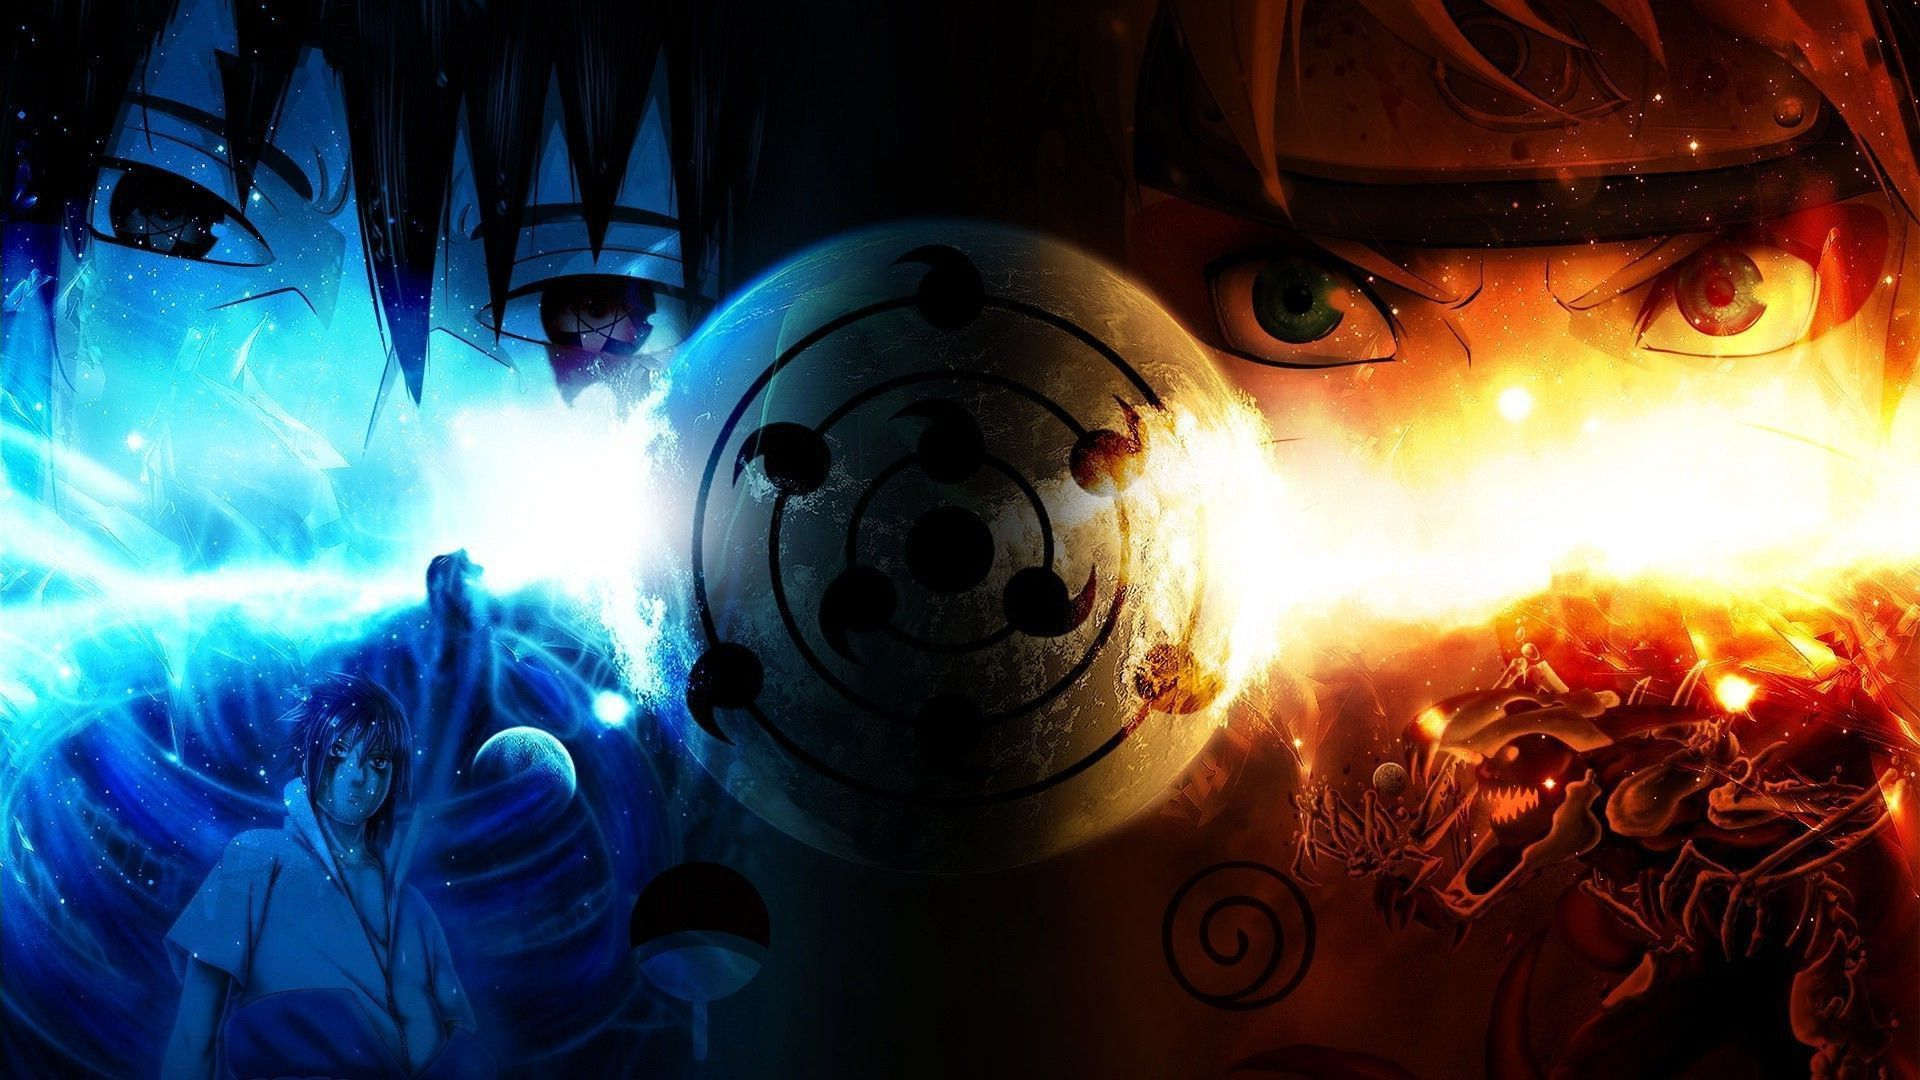 Naruto Fire And Ice Hd Anime Wallpaper Desktop Wallpapers 4k High Definition Windows 10 Mac Apple Bac Hd Anime Wallpapers Cool Anime Wallpapers Anime Wallpaper